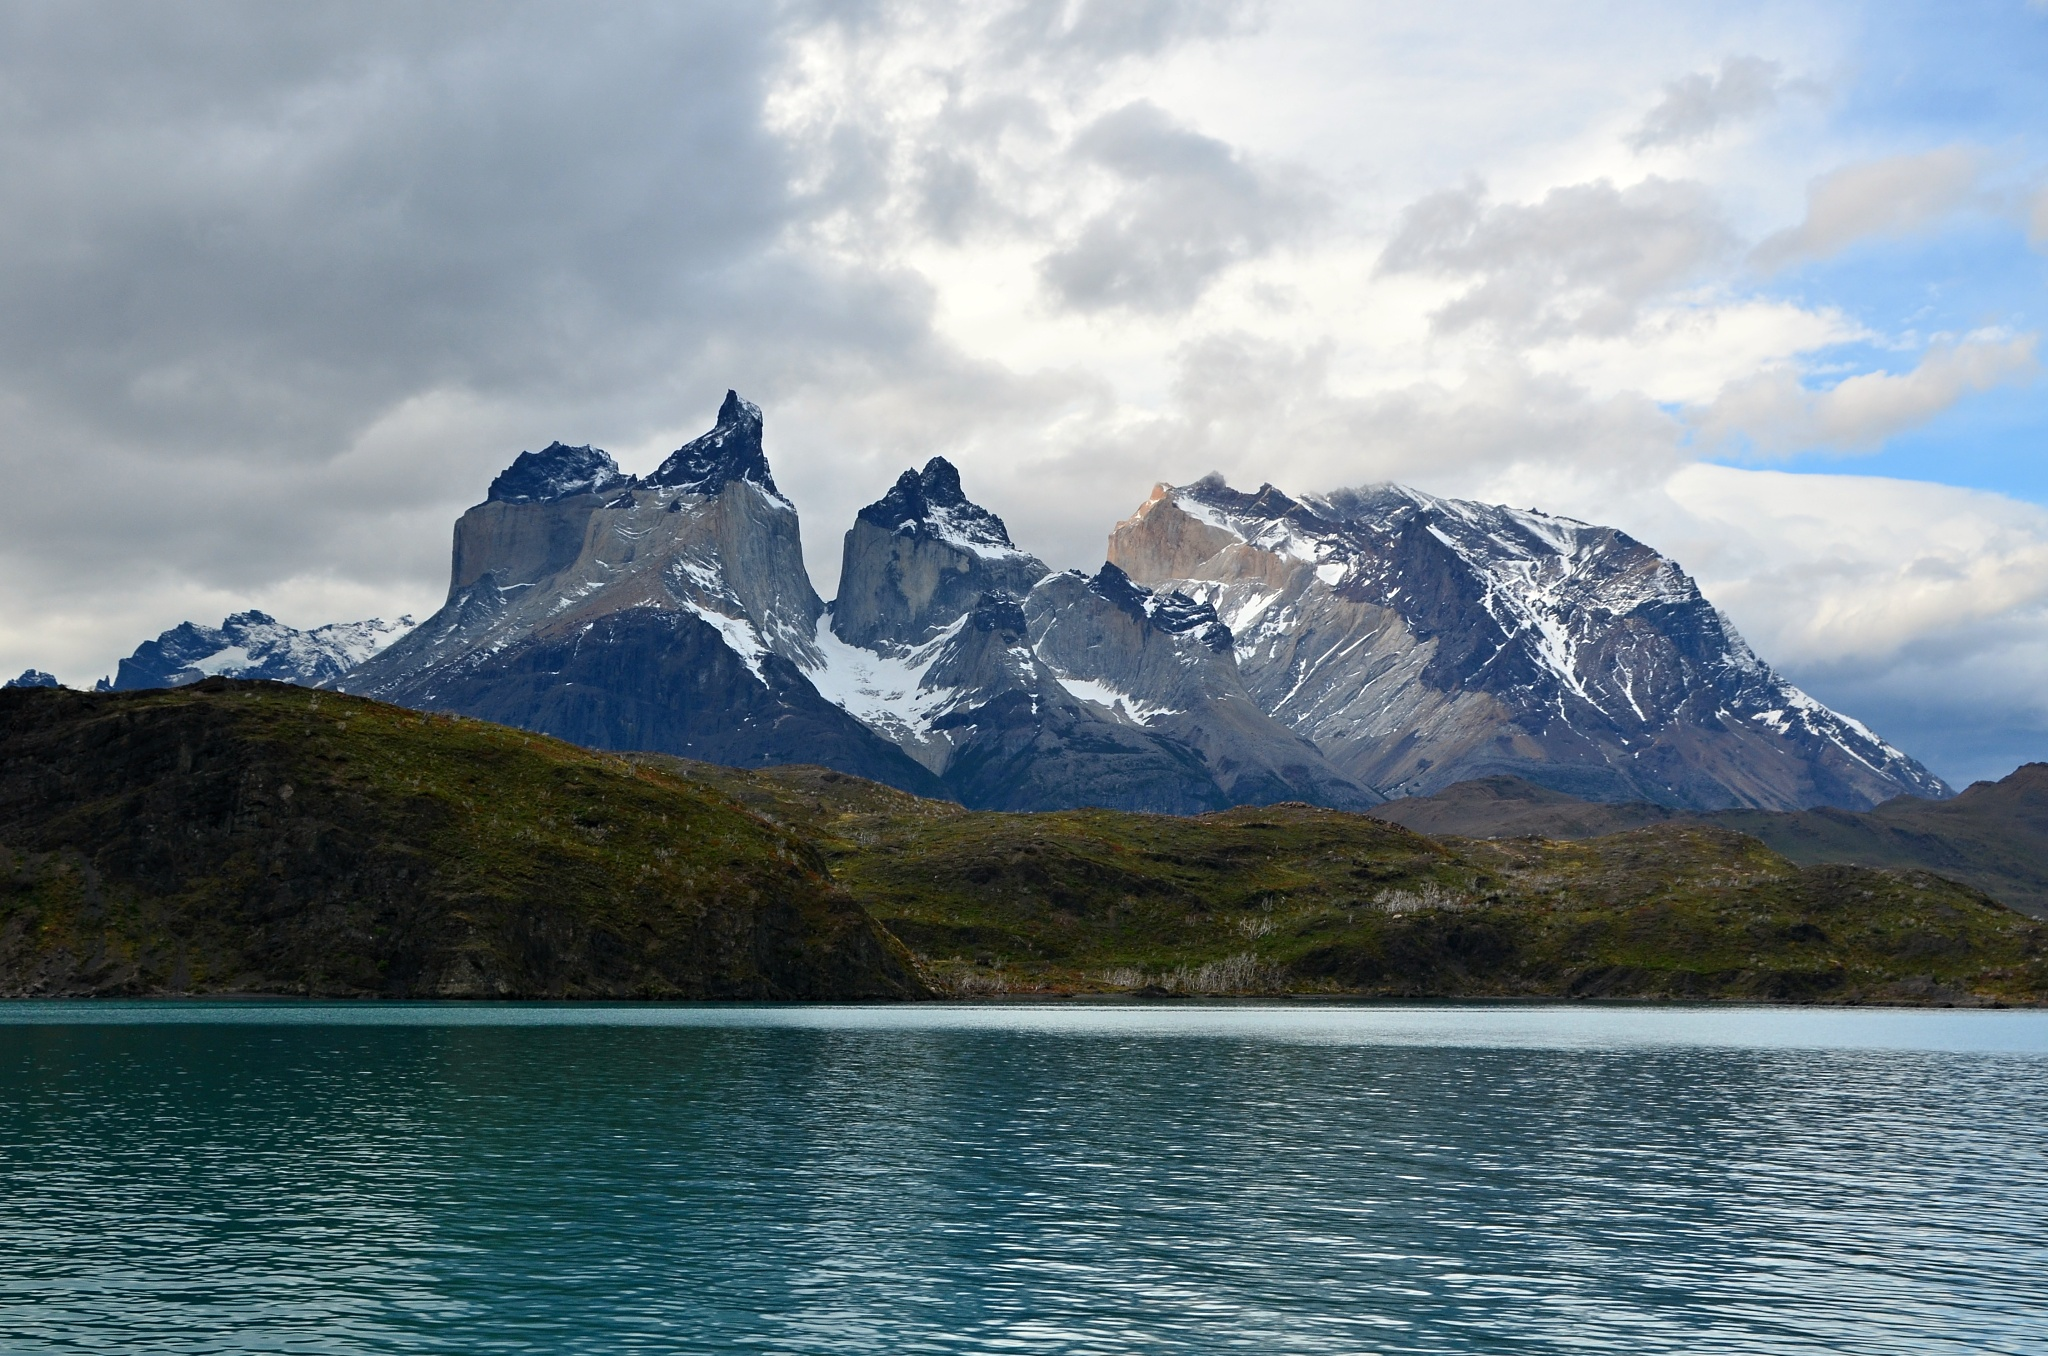 Nádherný pohled na Cuernos del Paine